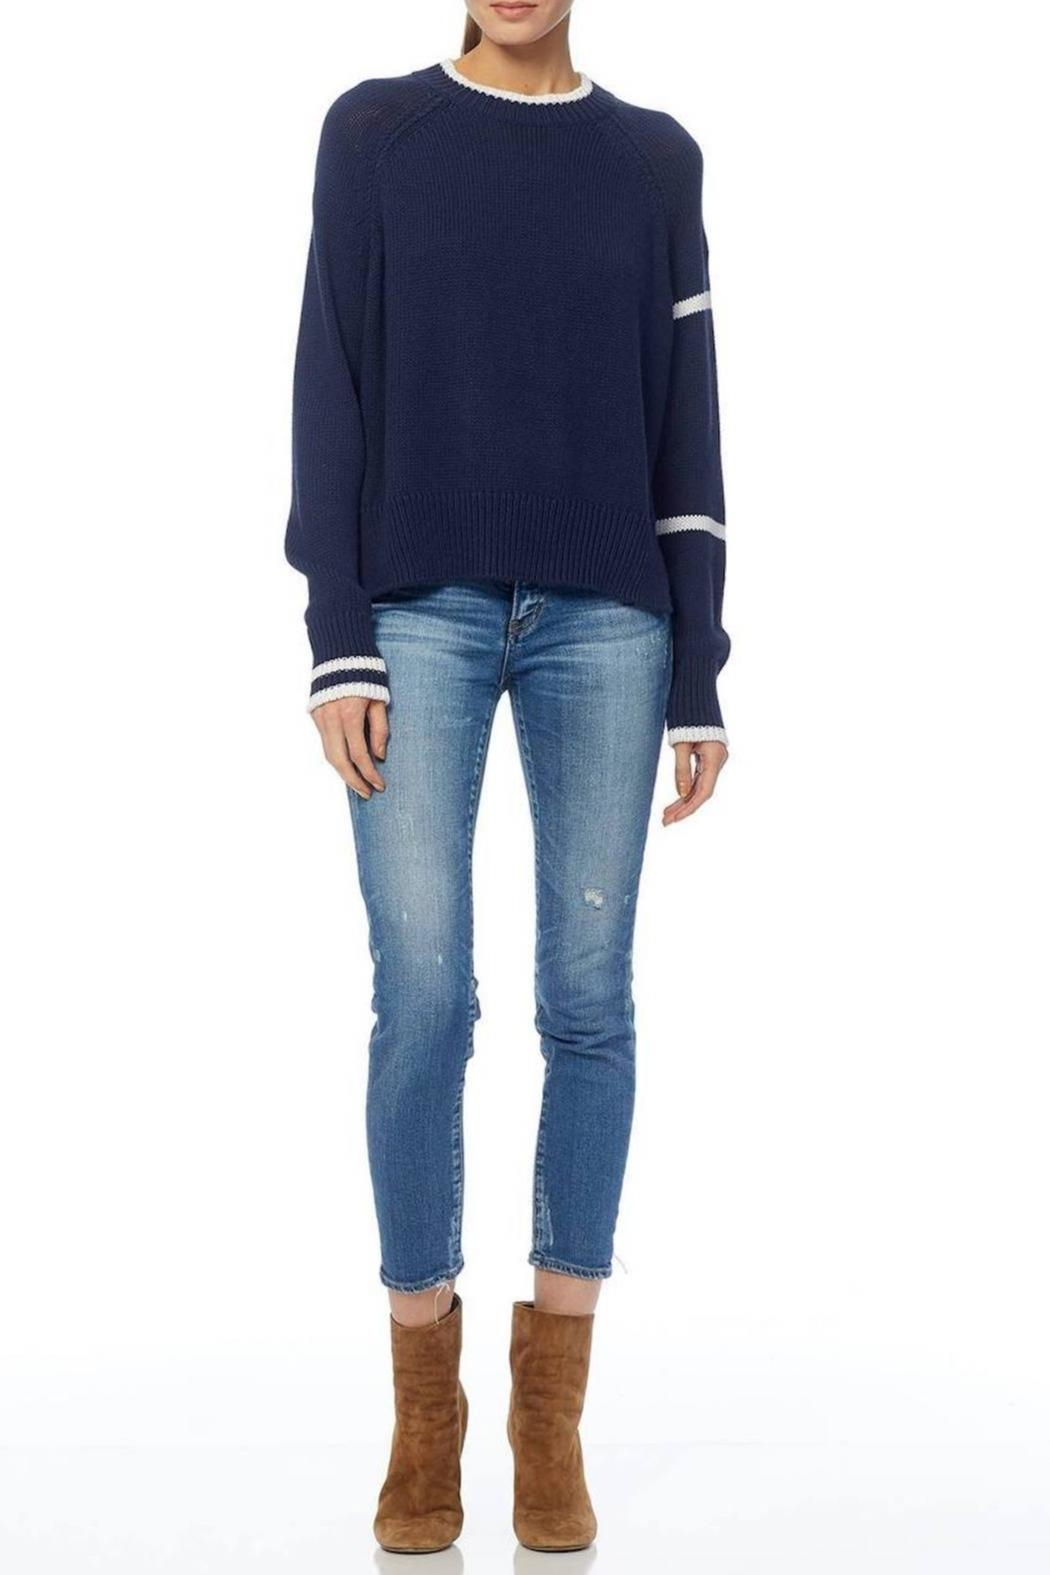 360 Cashmere Brynn Sweater - Back Cropped Image